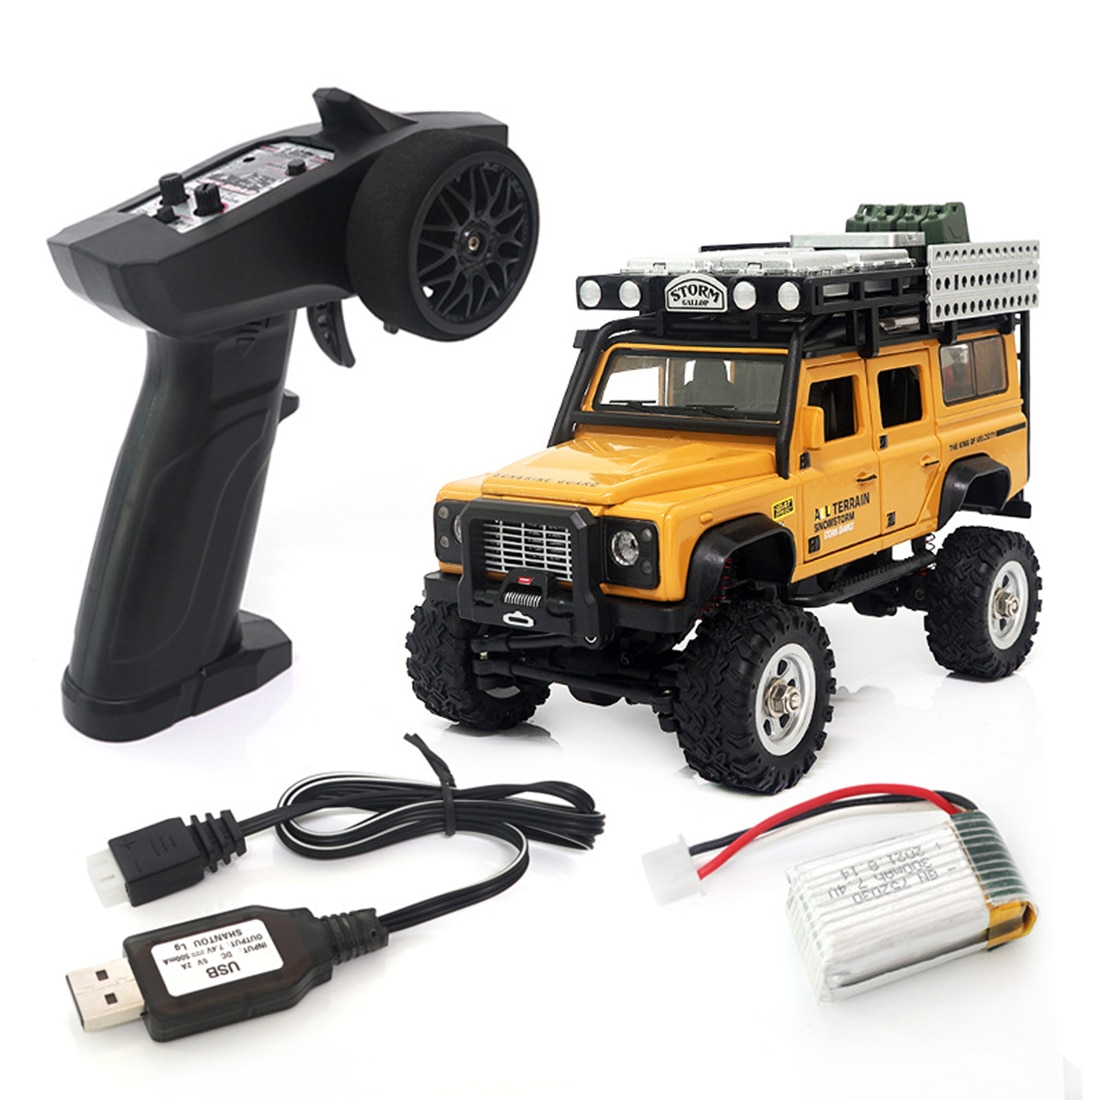 1/28 Scale RC Climbing Car 2.4G 4WD RC Electric Car Mini Alloy Off-road Climbing Car Model Toy with LED Car Lamp - RTR